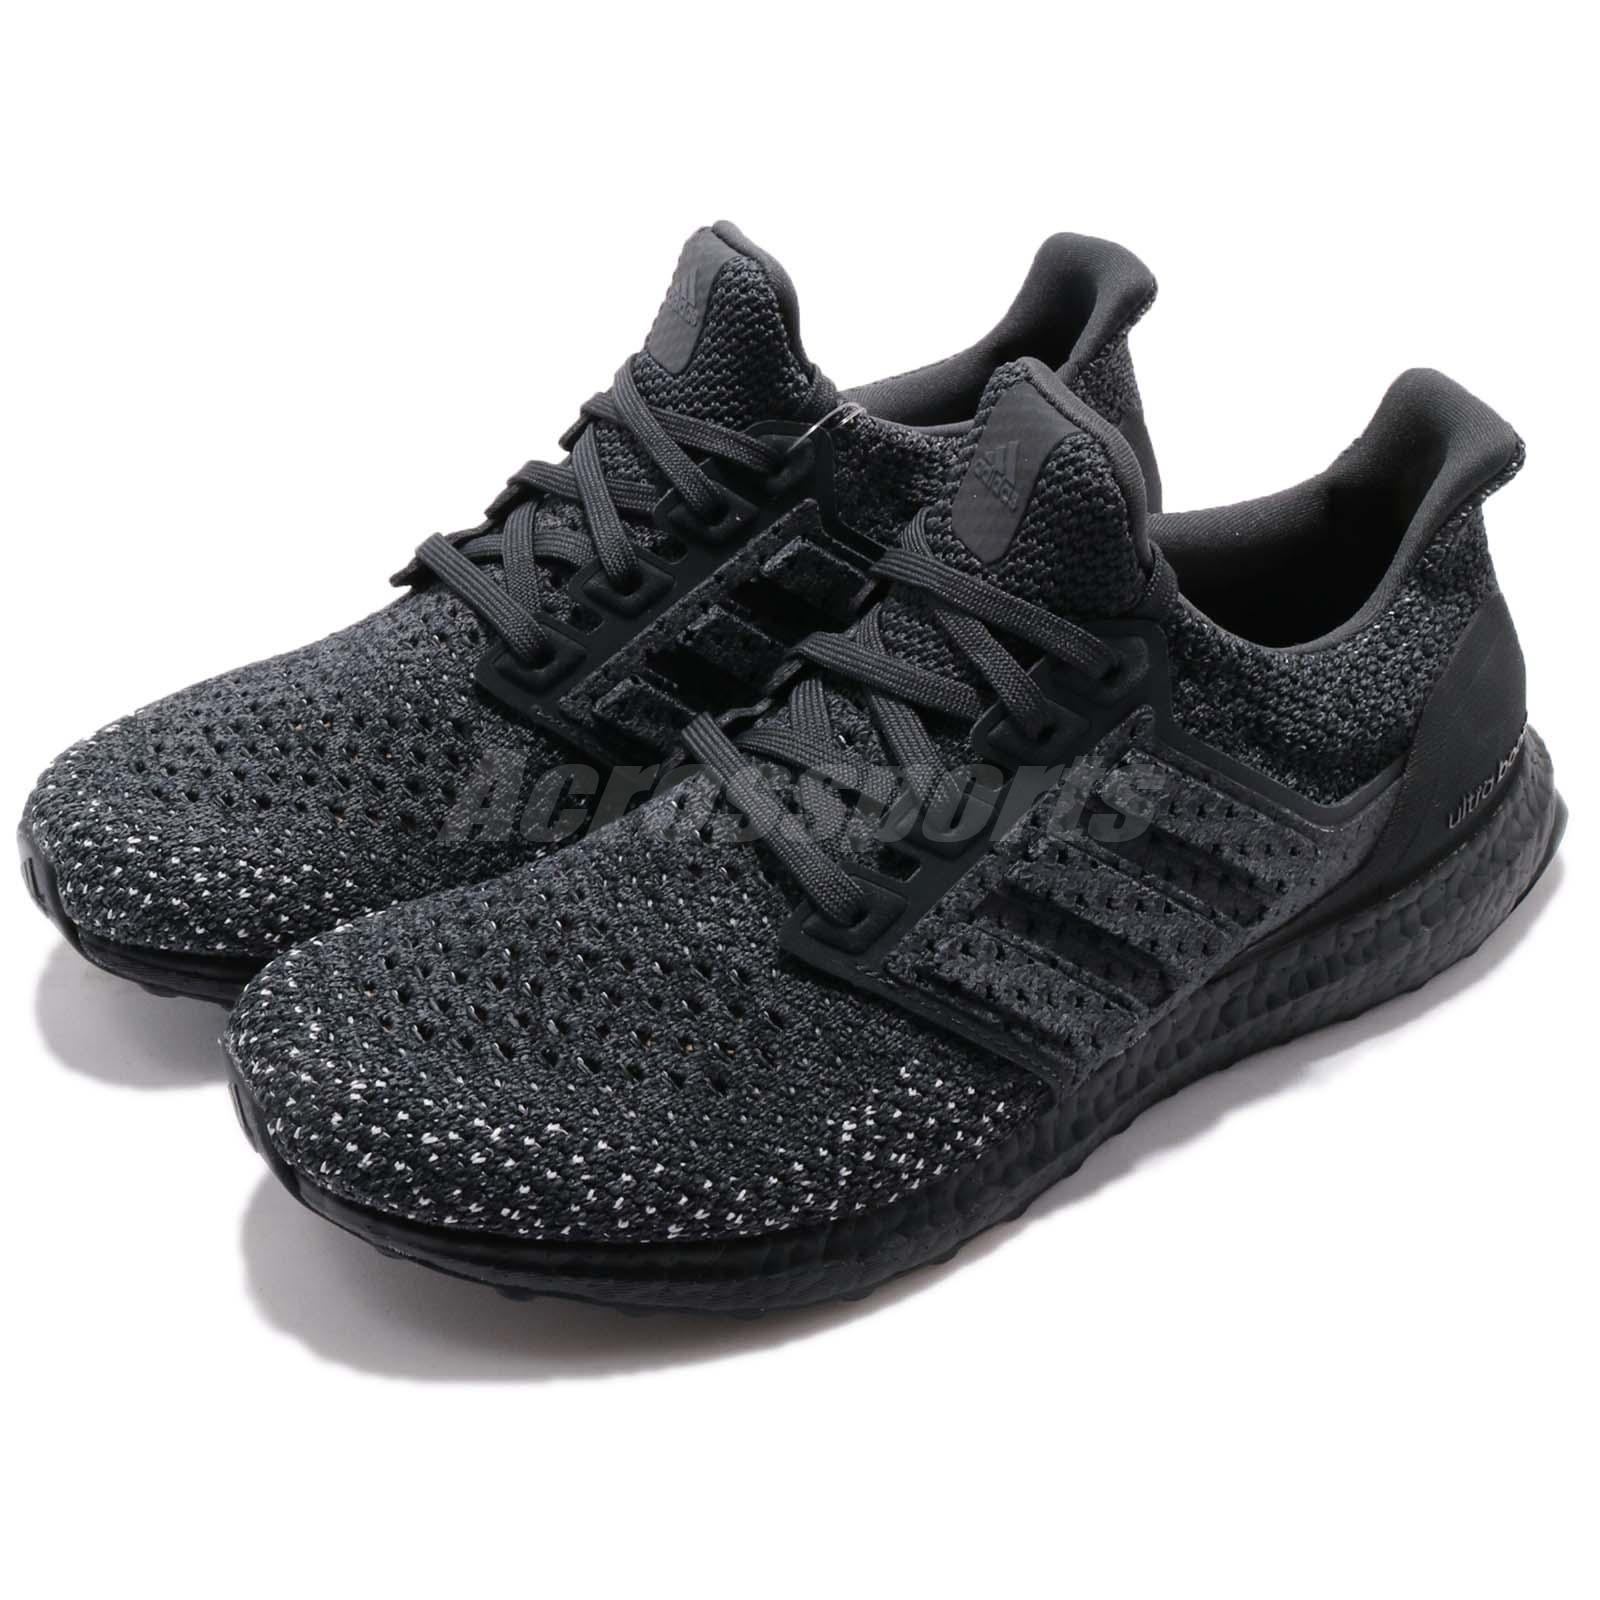 2b95b8e65524a Details about adidas Ultra BOOST Clima LTD 4.0 Carbon Black Men Running  Shoes Sneakers CQ0022